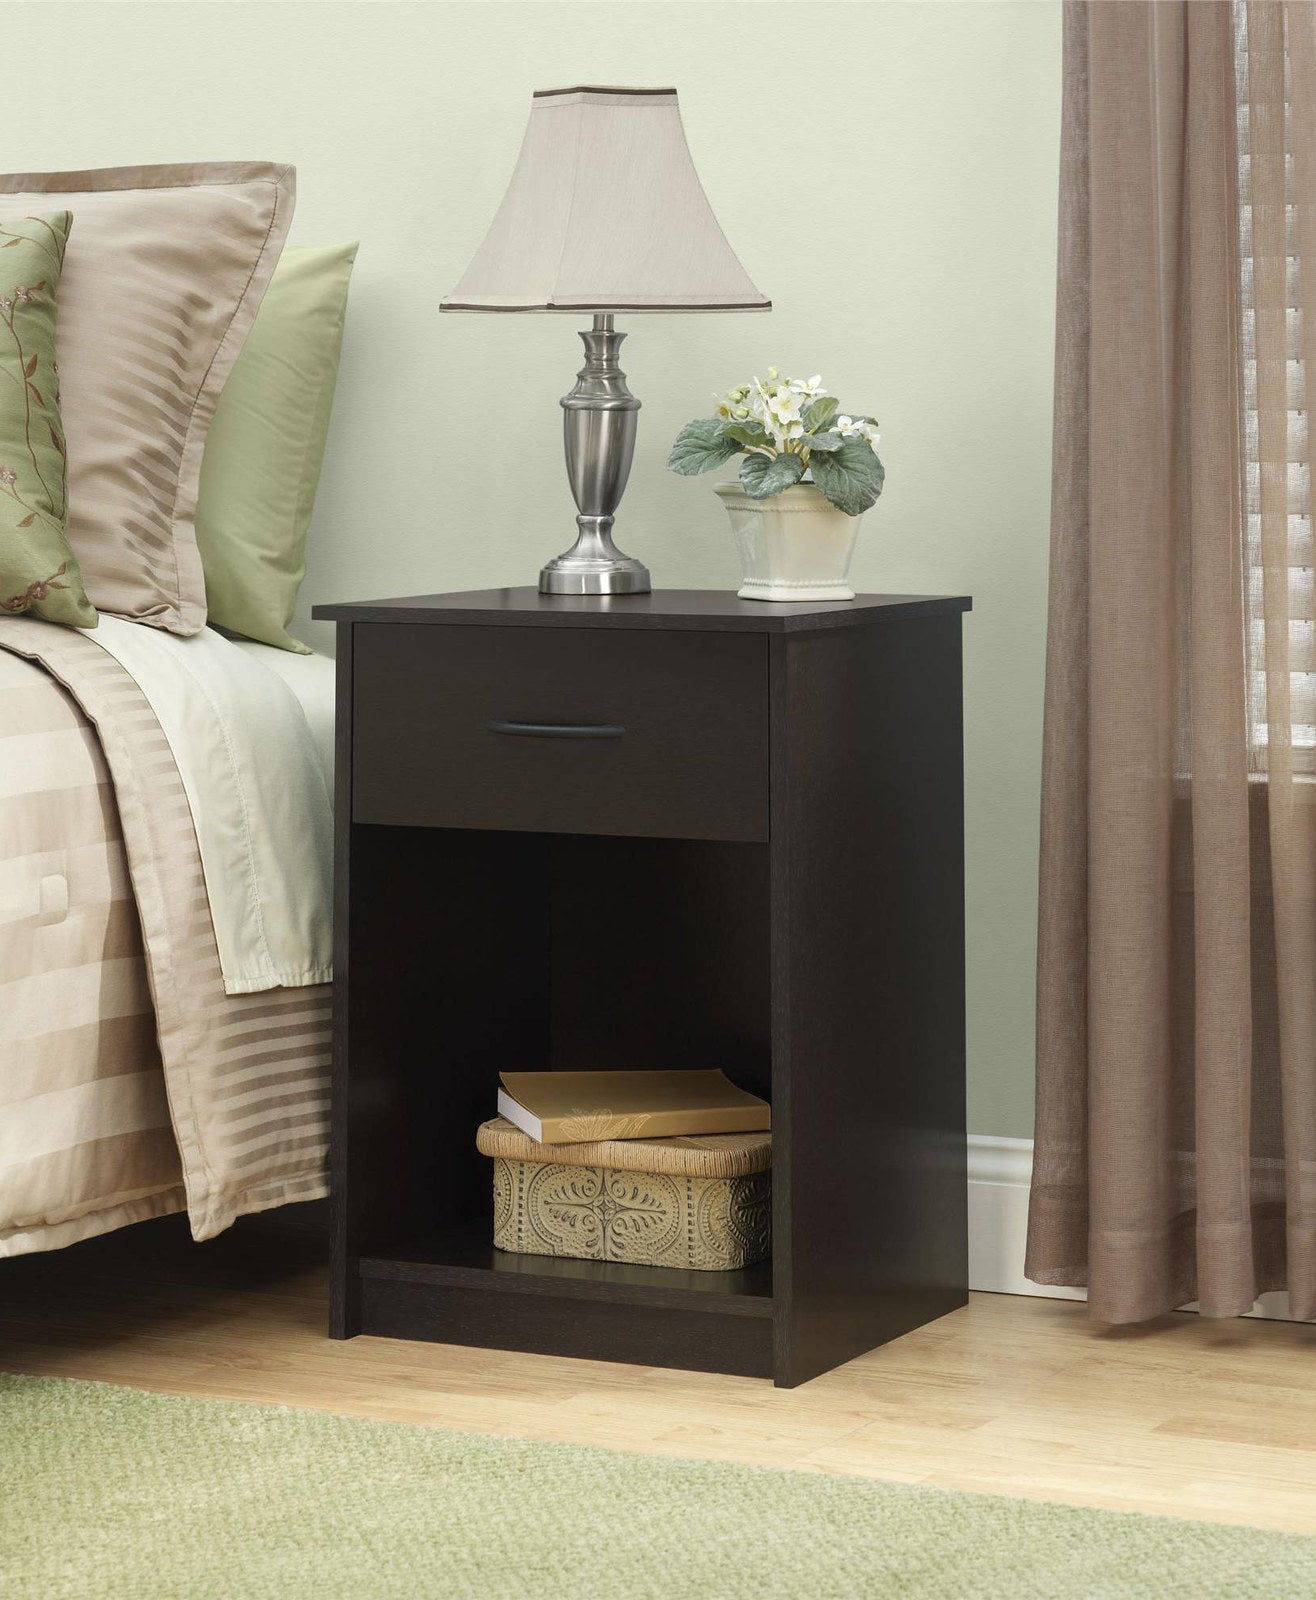 """Promising review: """"This is the best deal out there! If you are looking for function and quality at a low price, this is a great deal. Takes about an hour to assemble and is very sturdy. I can see this nightstand lasting for a long time!"""" —EmilybbPrice: $36.99 (available in four colors)"""